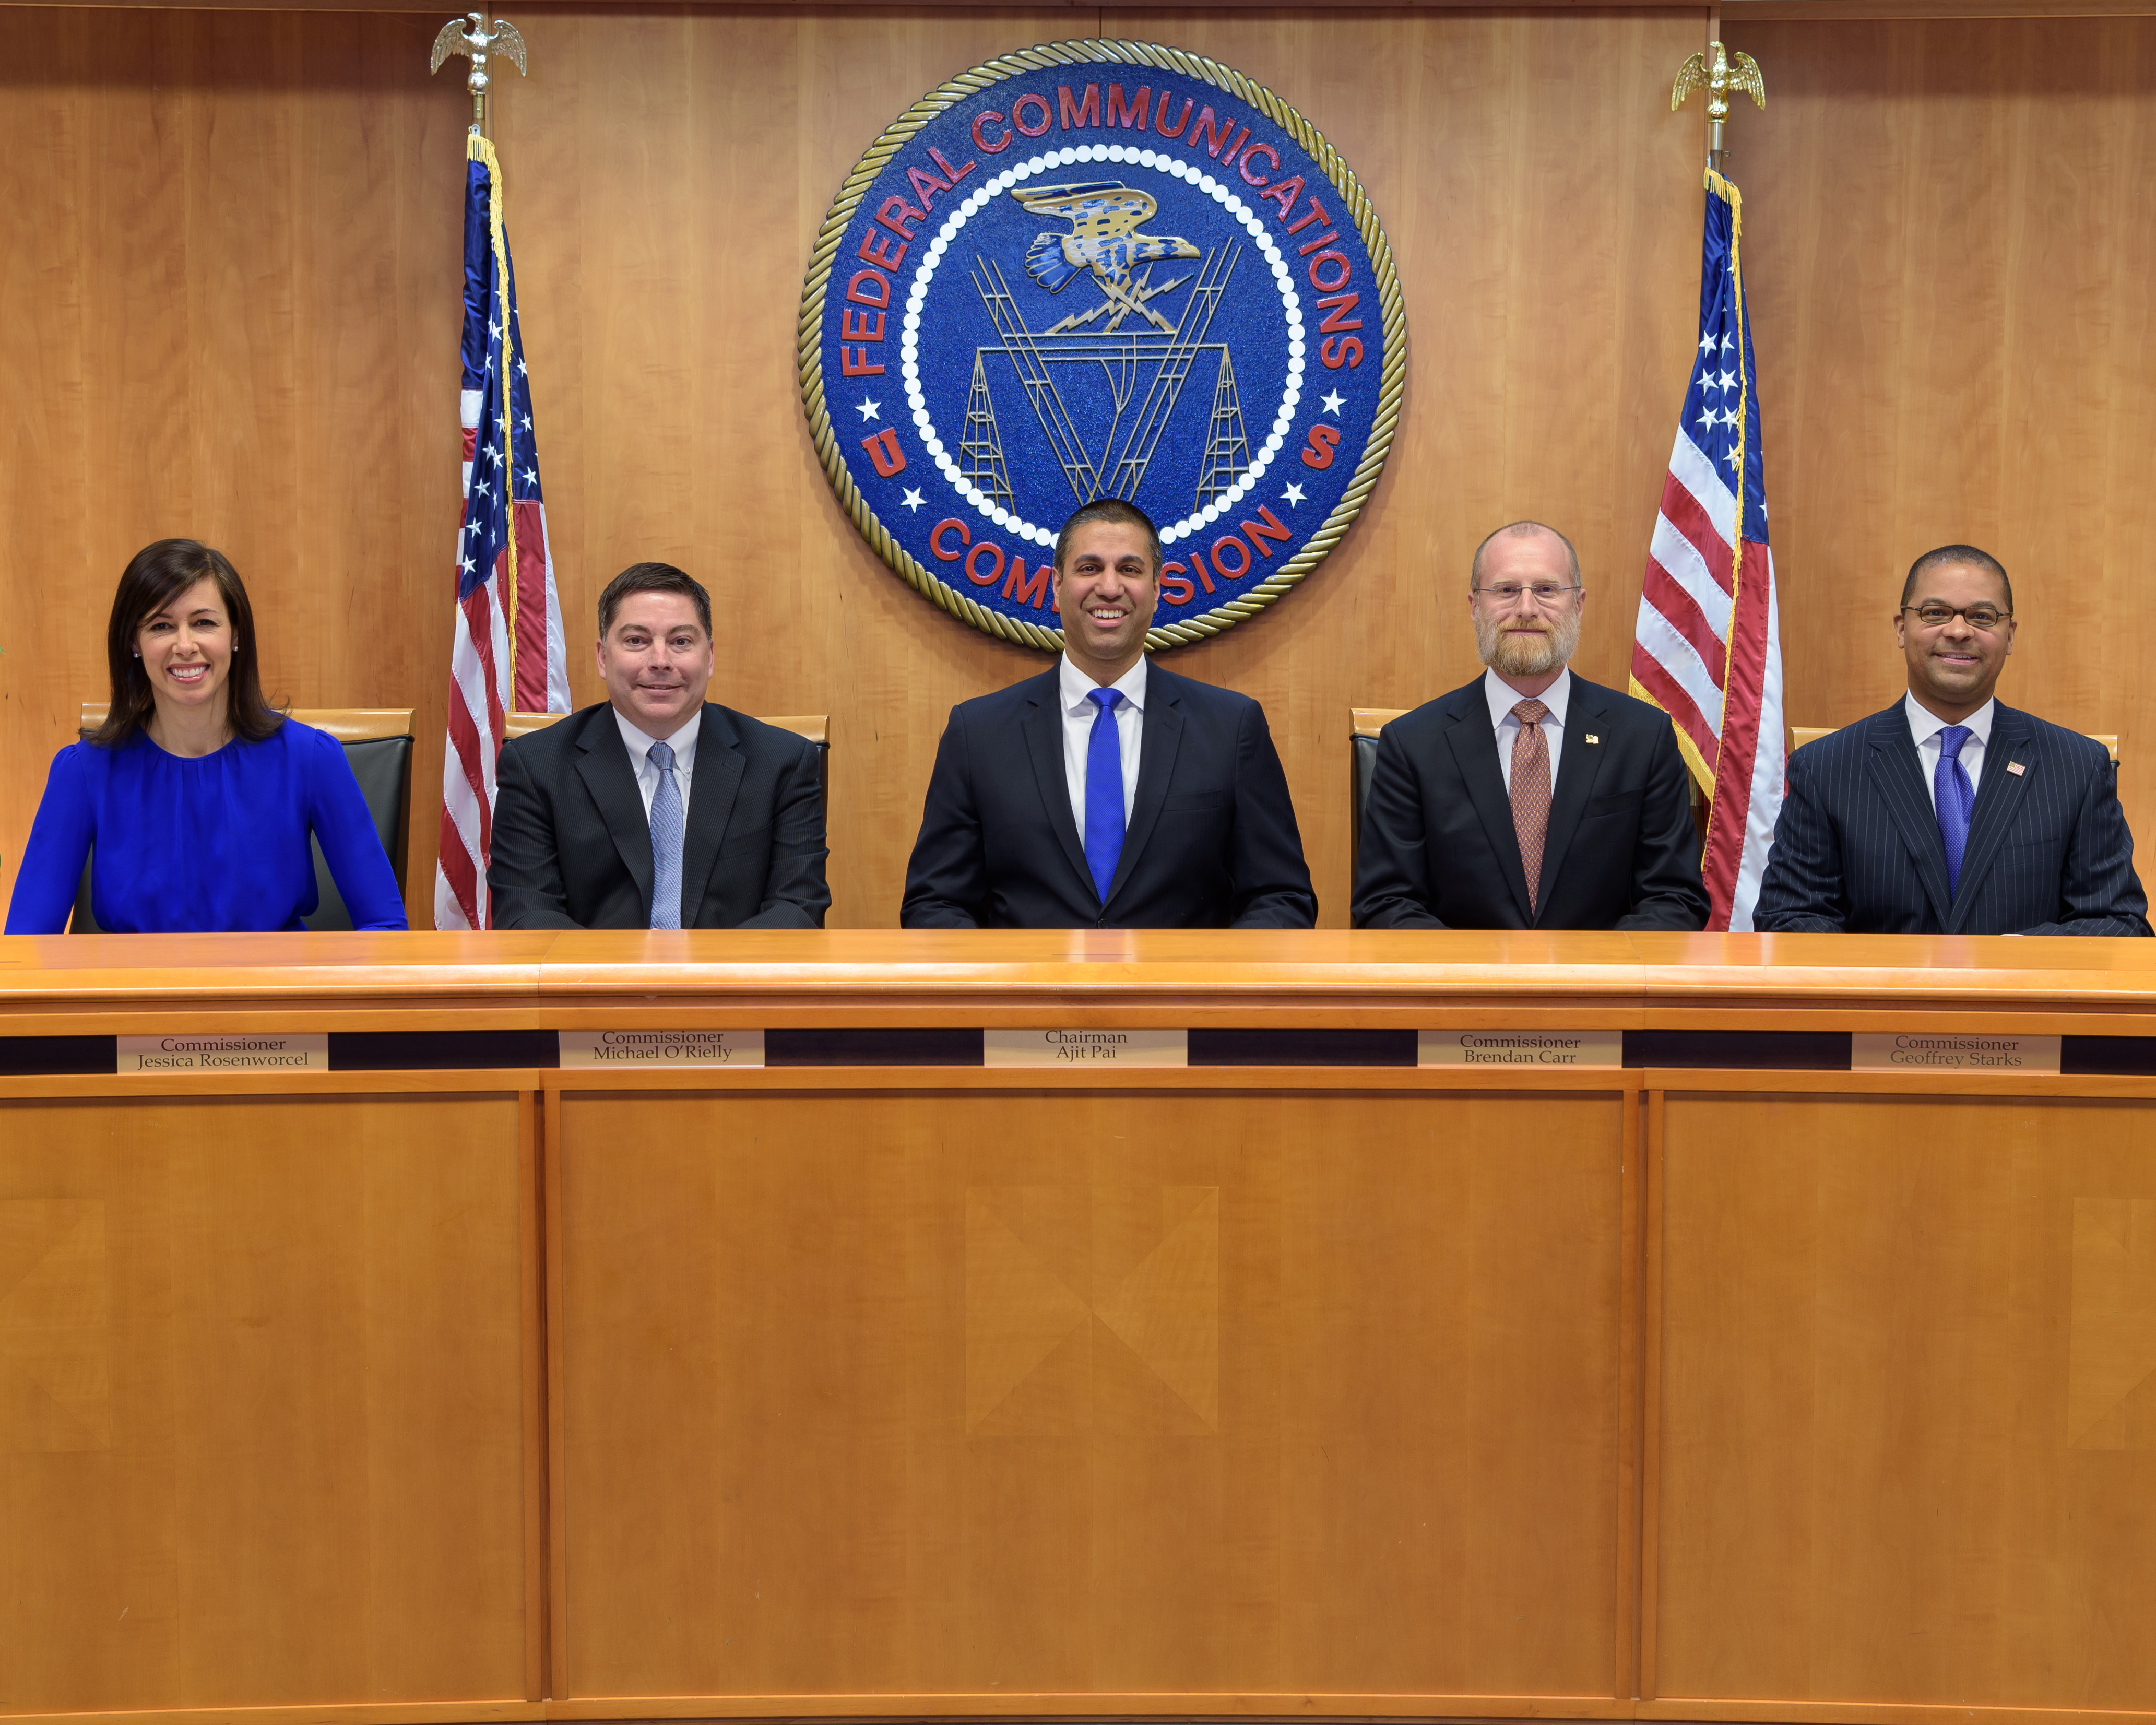 FCC Leadership Left to Right Commissioner Jessica Rosenworcel, Commissioner Michael O'Rielly, Chairman Ajit Pai, Commissioner Brendan Carr and Commissioner Geoffrey Starks.